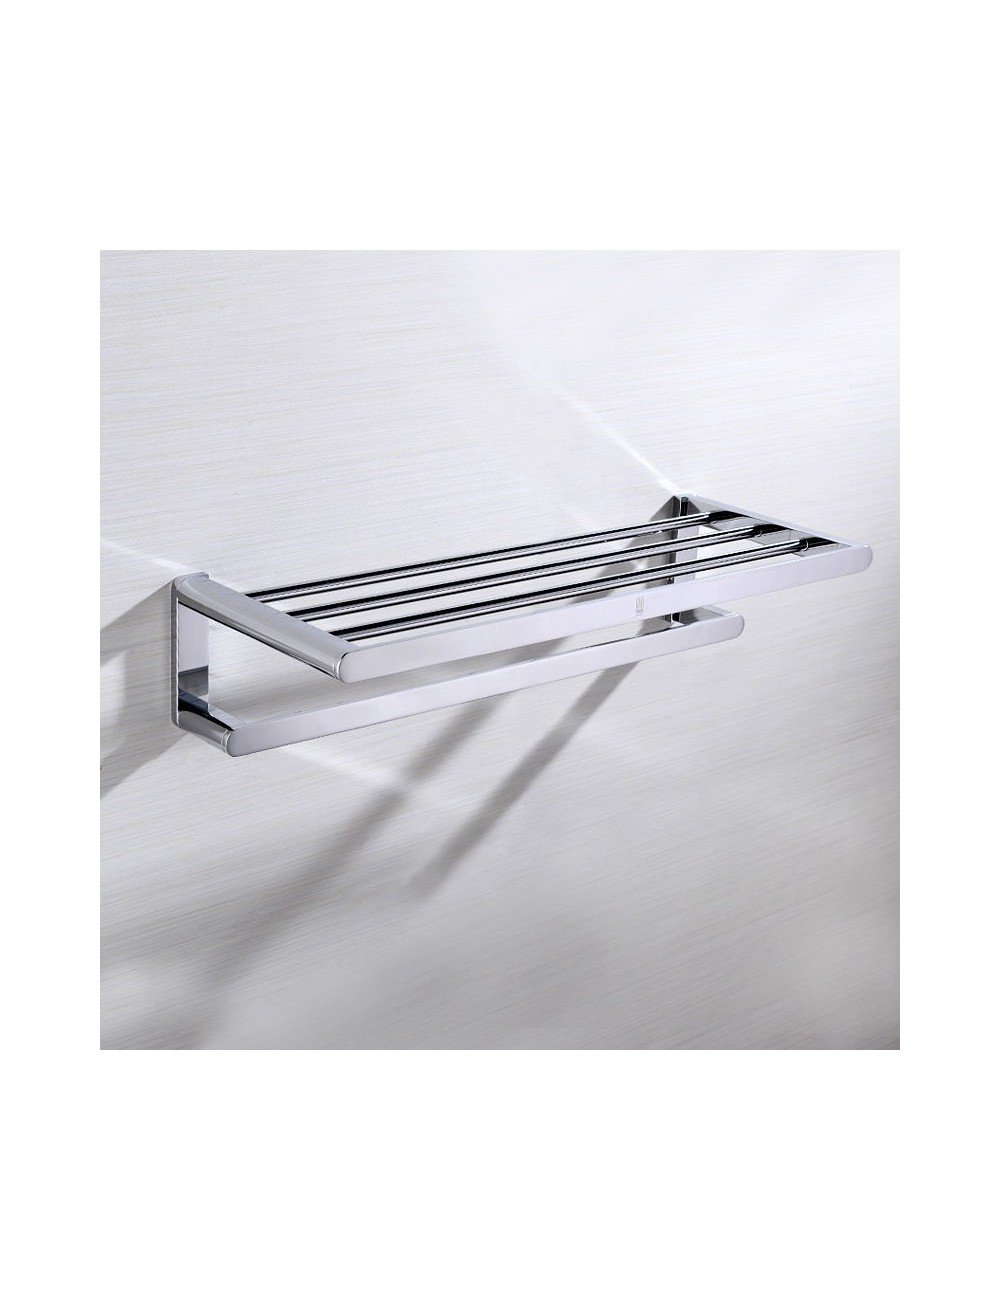 Collection Concorde, Porte-serviette Rack 60 cm